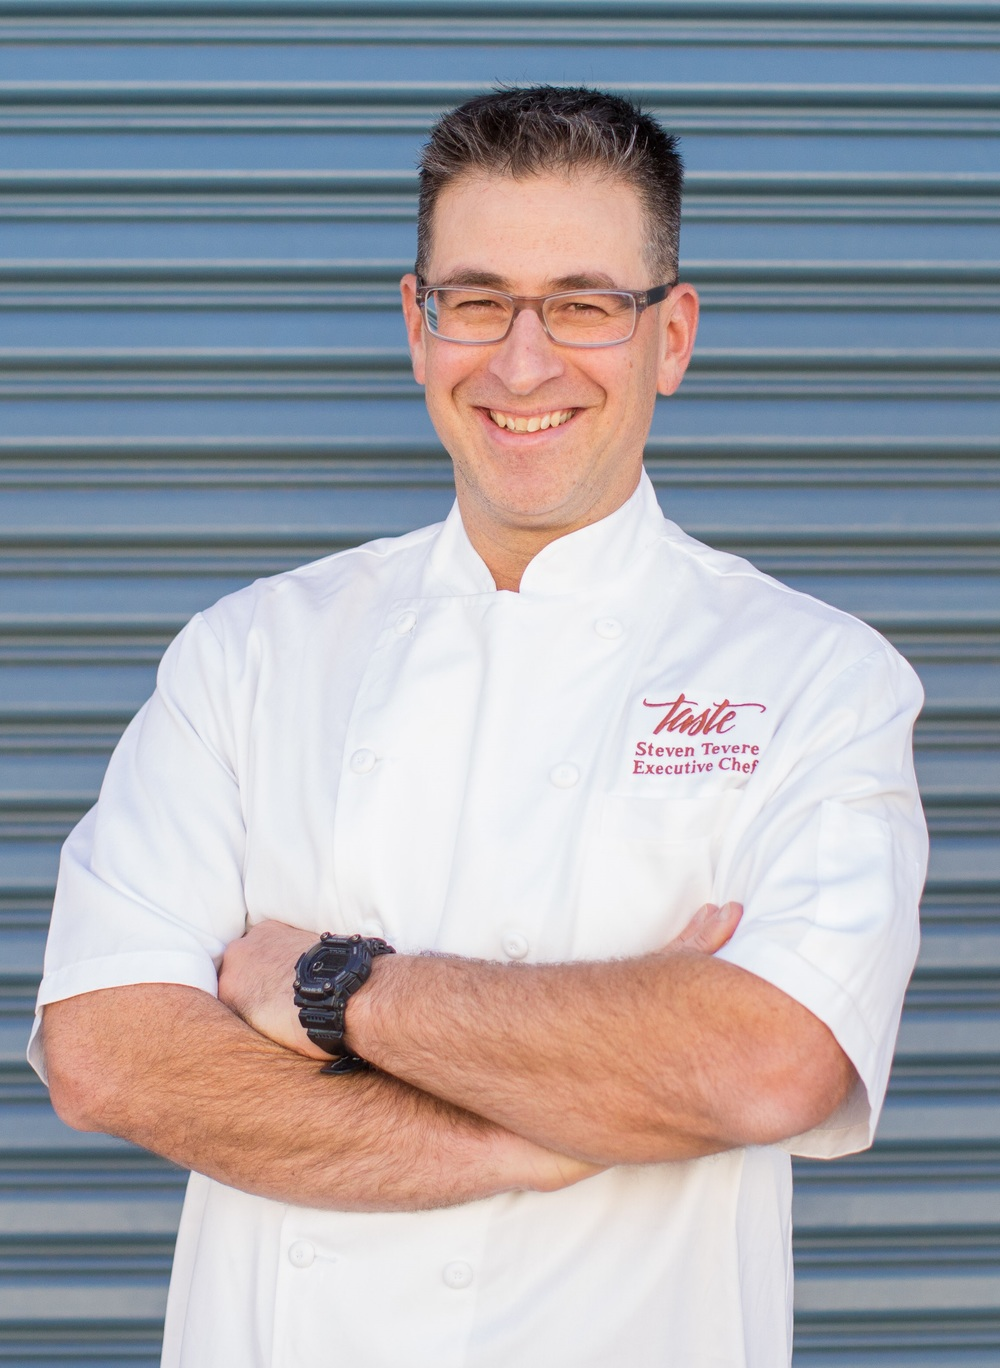 San-francisco-private-events-executive-chef-steven-tevere_Cropped.jpg